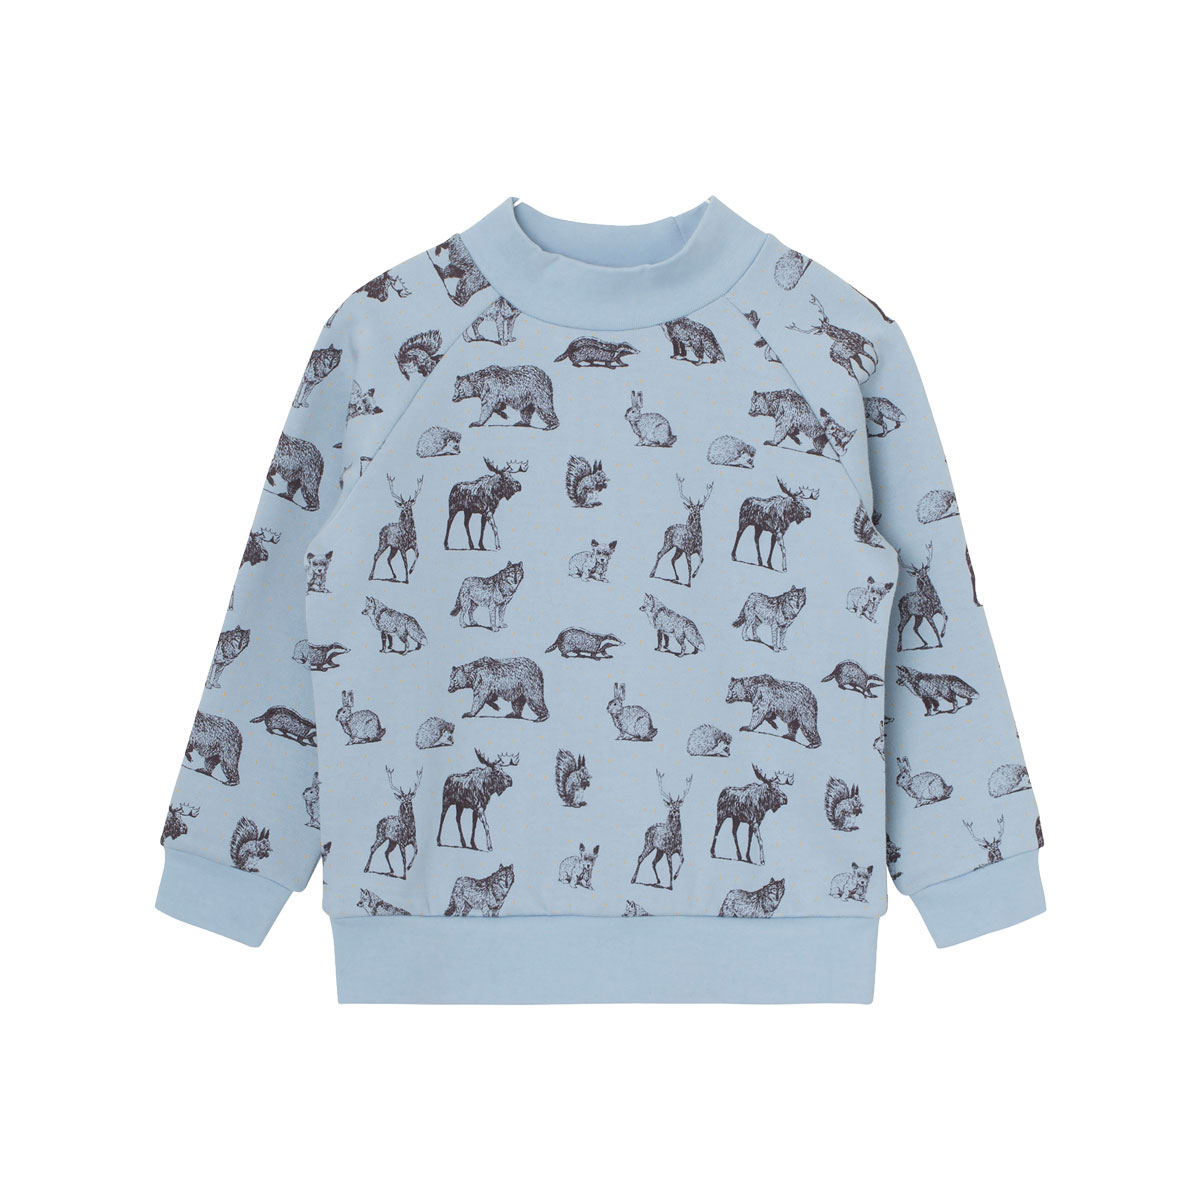 MiniATure Jannic Sweater in Blue Animals